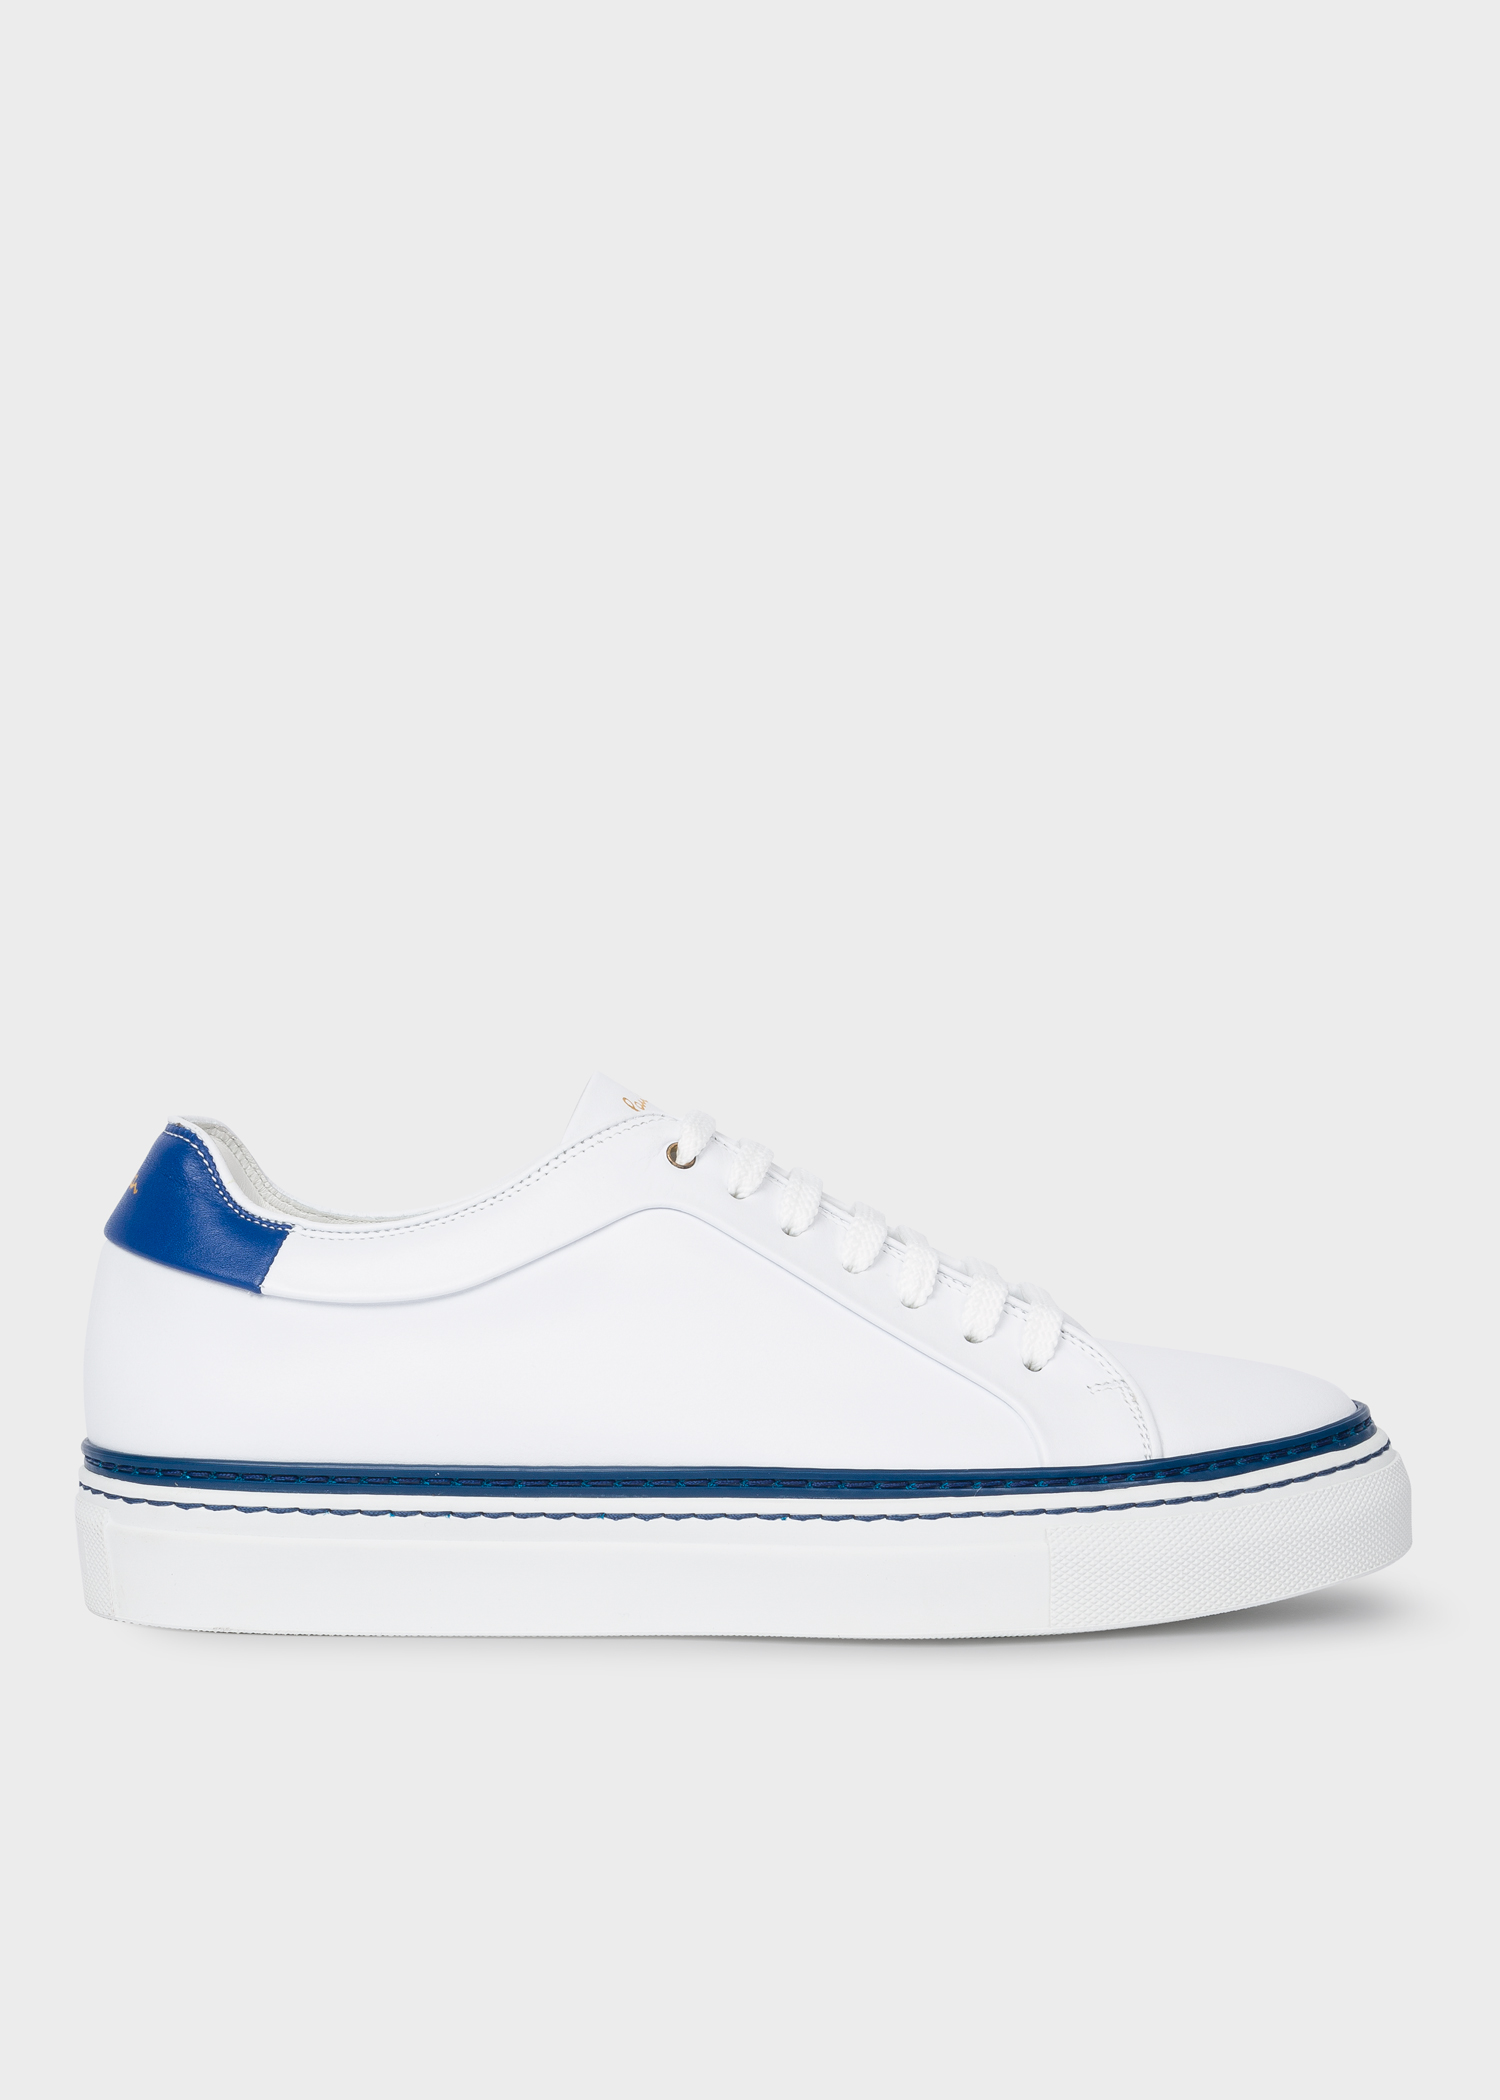 92b912dc7a5 Side view - Men's White Leather 'Basso' Trainers With Blue Details Paul  Smith